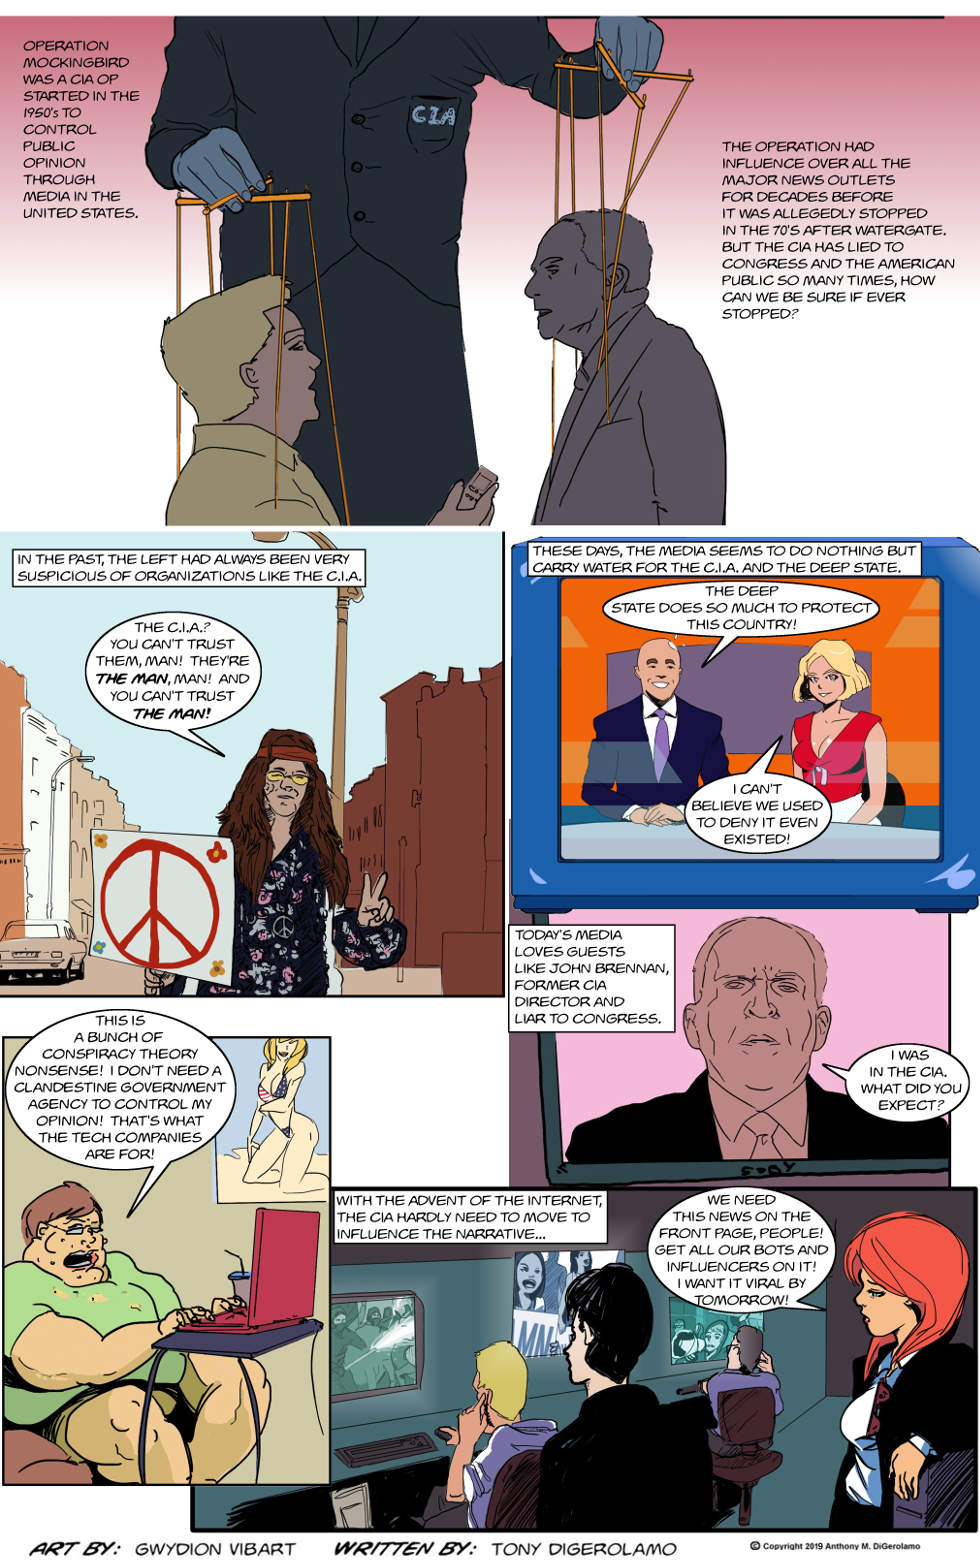 The Antiwar Comic:  The Influencers